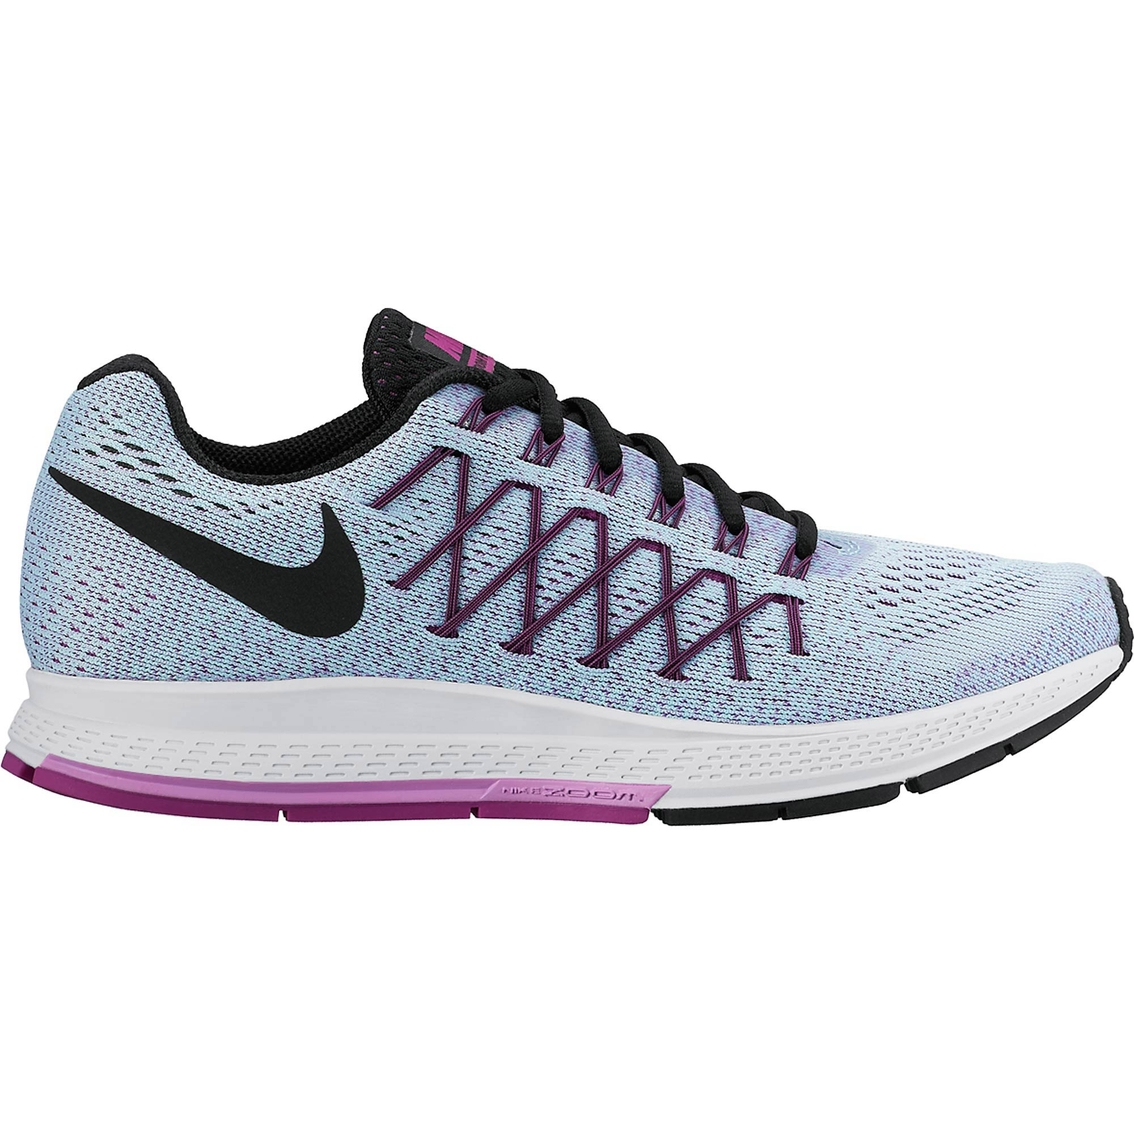 the latest deed4 000f2 Nike Women s Air Zoom Pegasus 32 Running Shoes